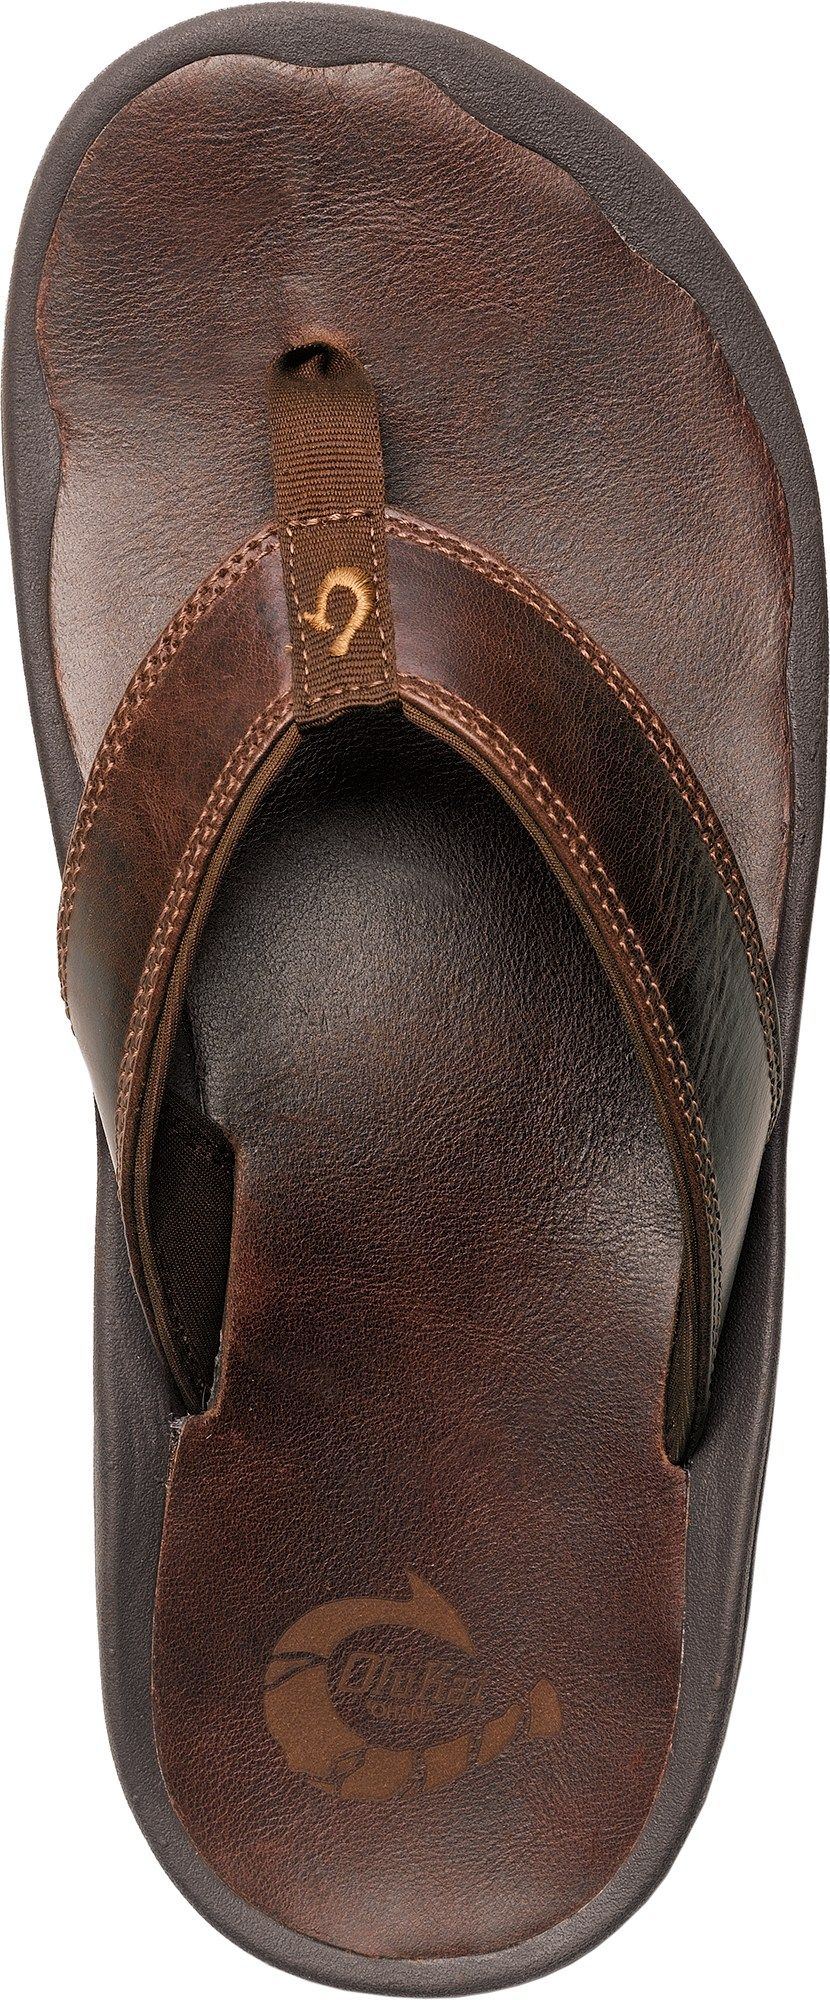 OluKai U0027Ohana Leather Flip Flops   Menu0027s   Free Shipping At REI.com